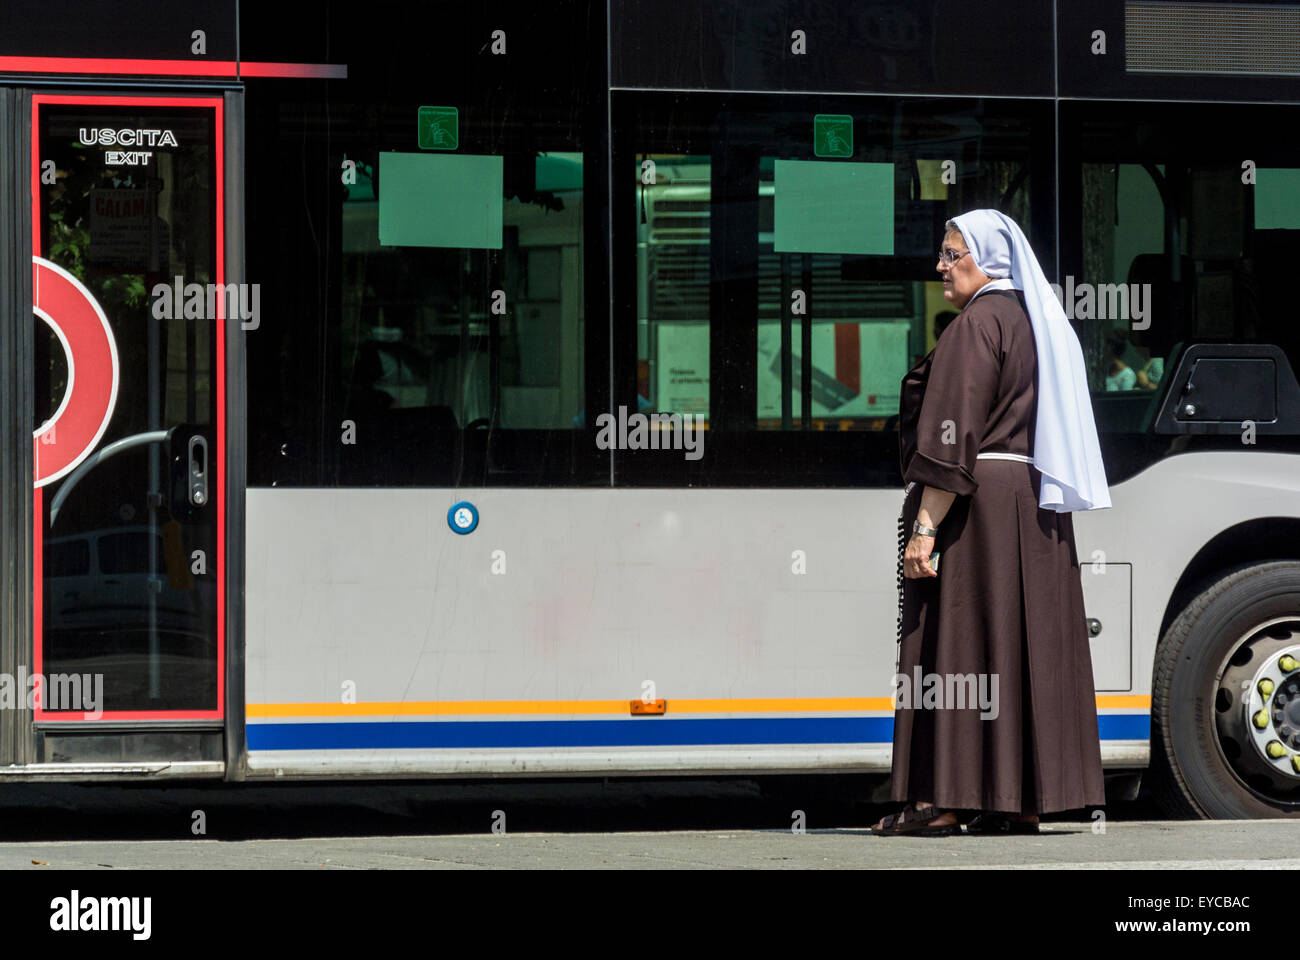 Nun waiting to catch a bus. - Stock Image